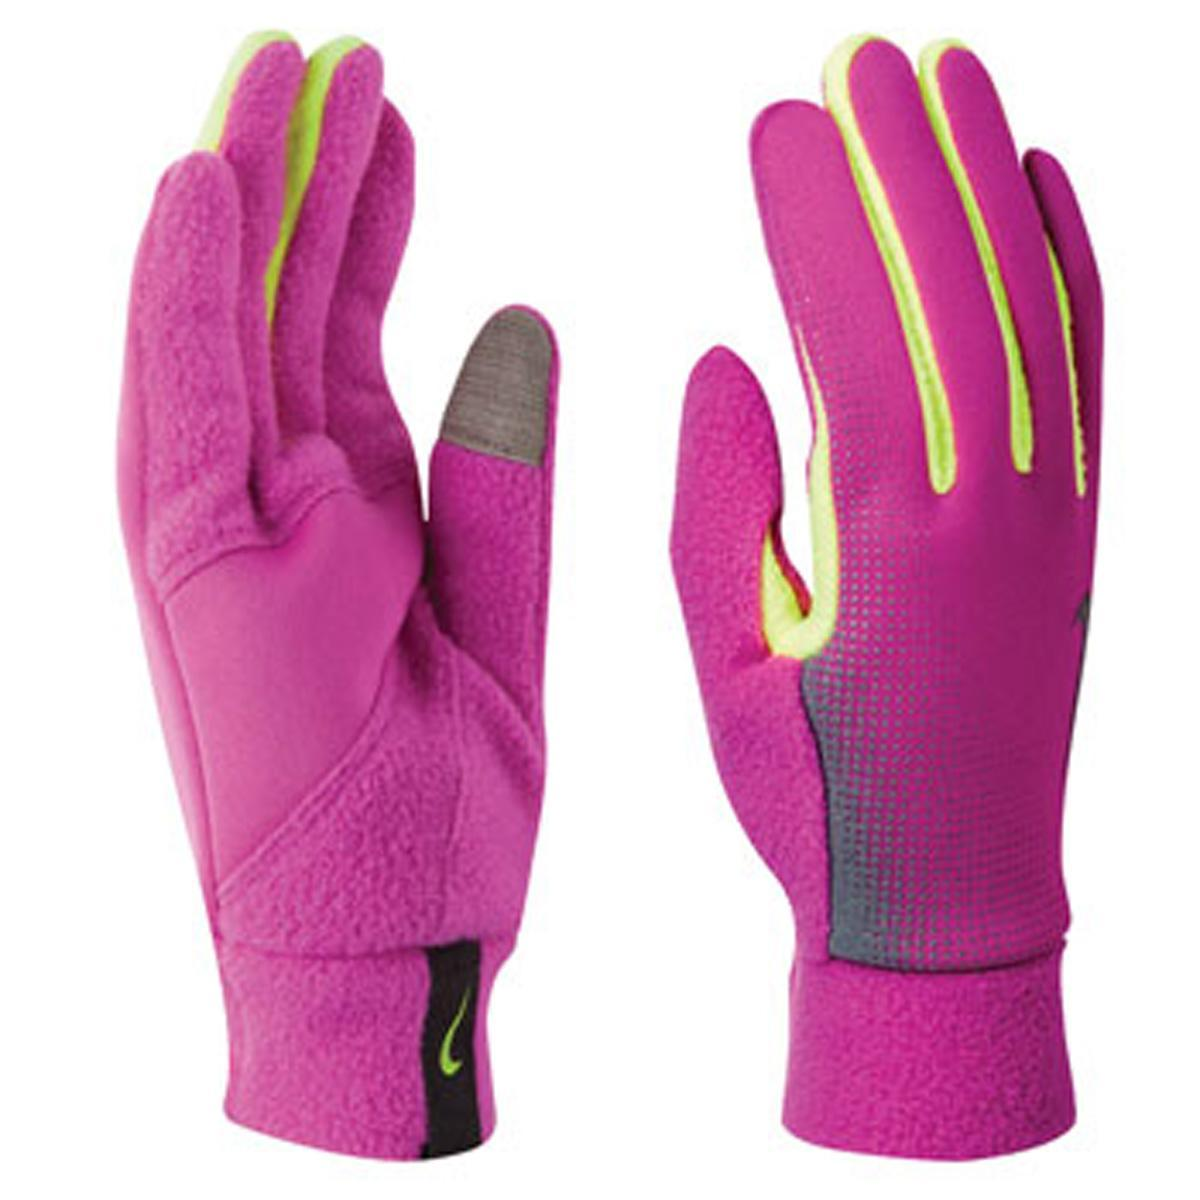 Nike Thermal Gloves: Nike Womens Tech Thermal Gloves